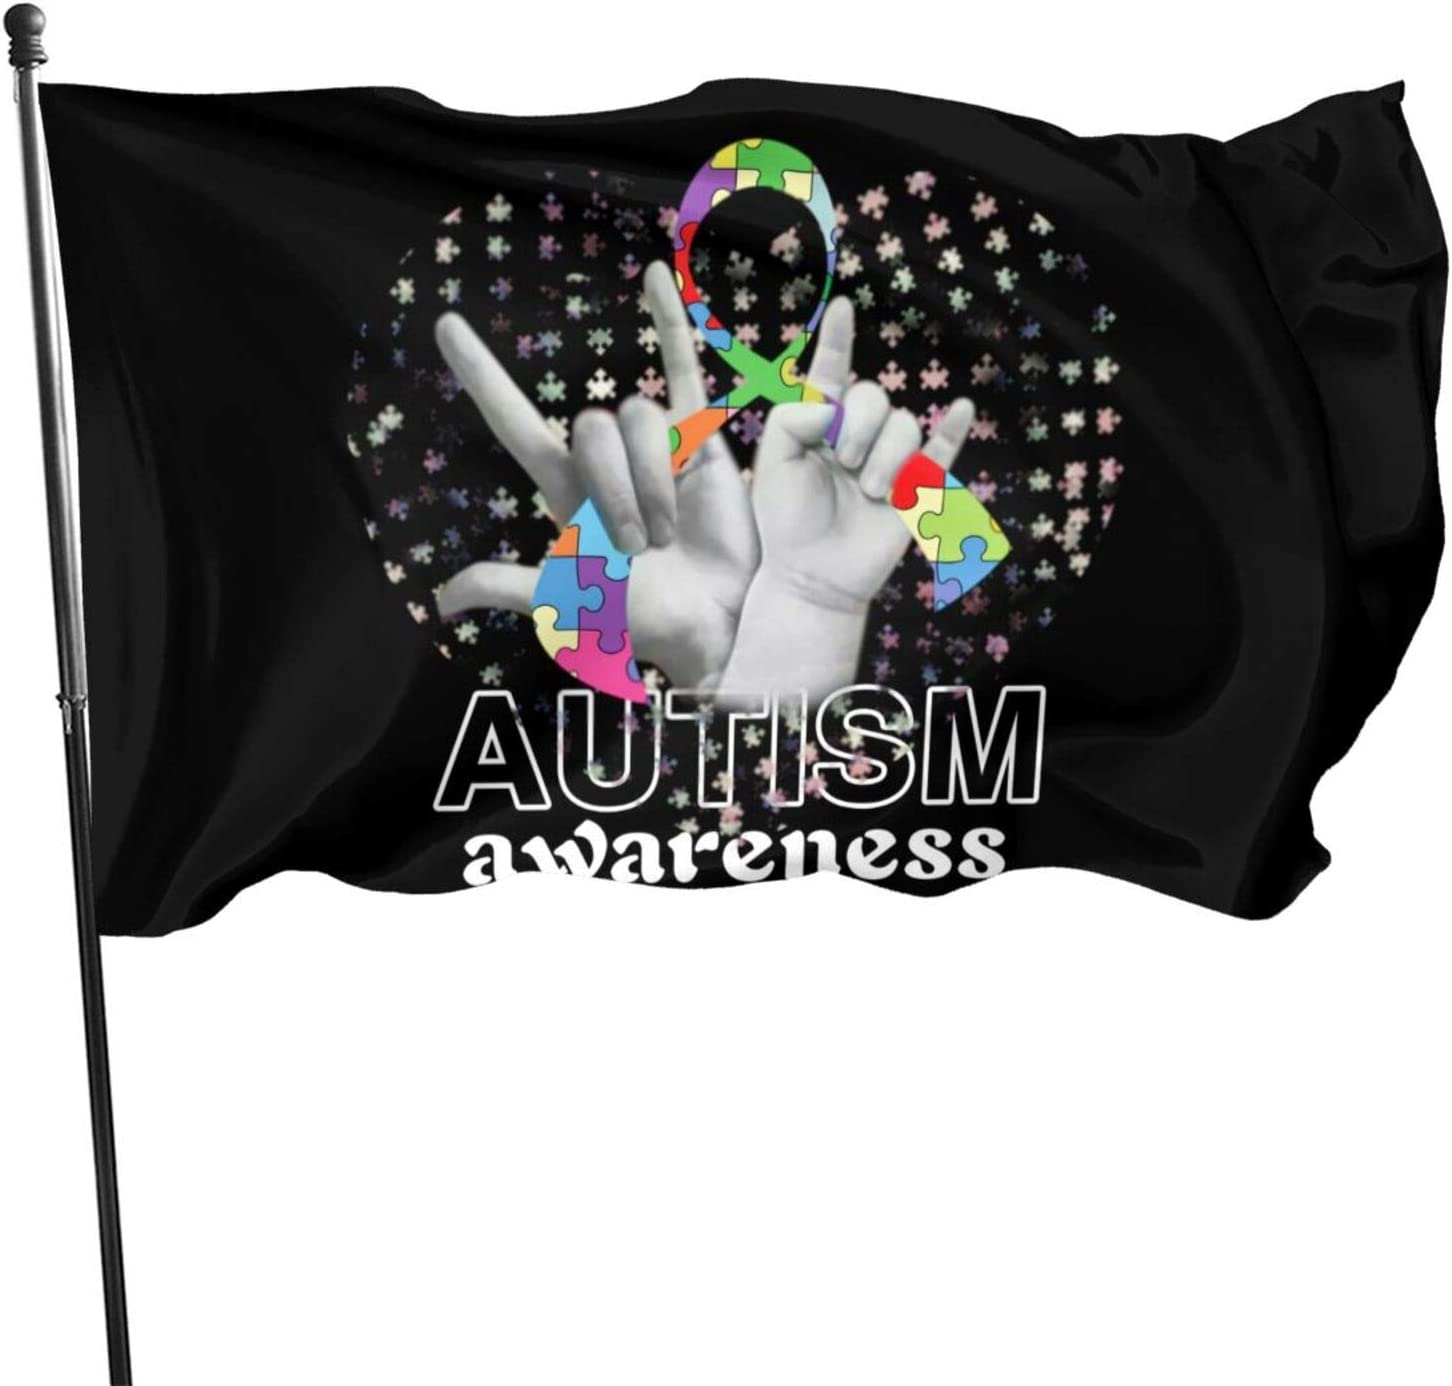 EROOU8W Ribbon Jigsaw Puzzle Autism Awareness Strong Flag 3x5,Love Support Advocate Autism Acceptance Flag 3x5 FT Banner Indoor Outdoor for Yard Garden House Decorative Home Fall Flag Decor